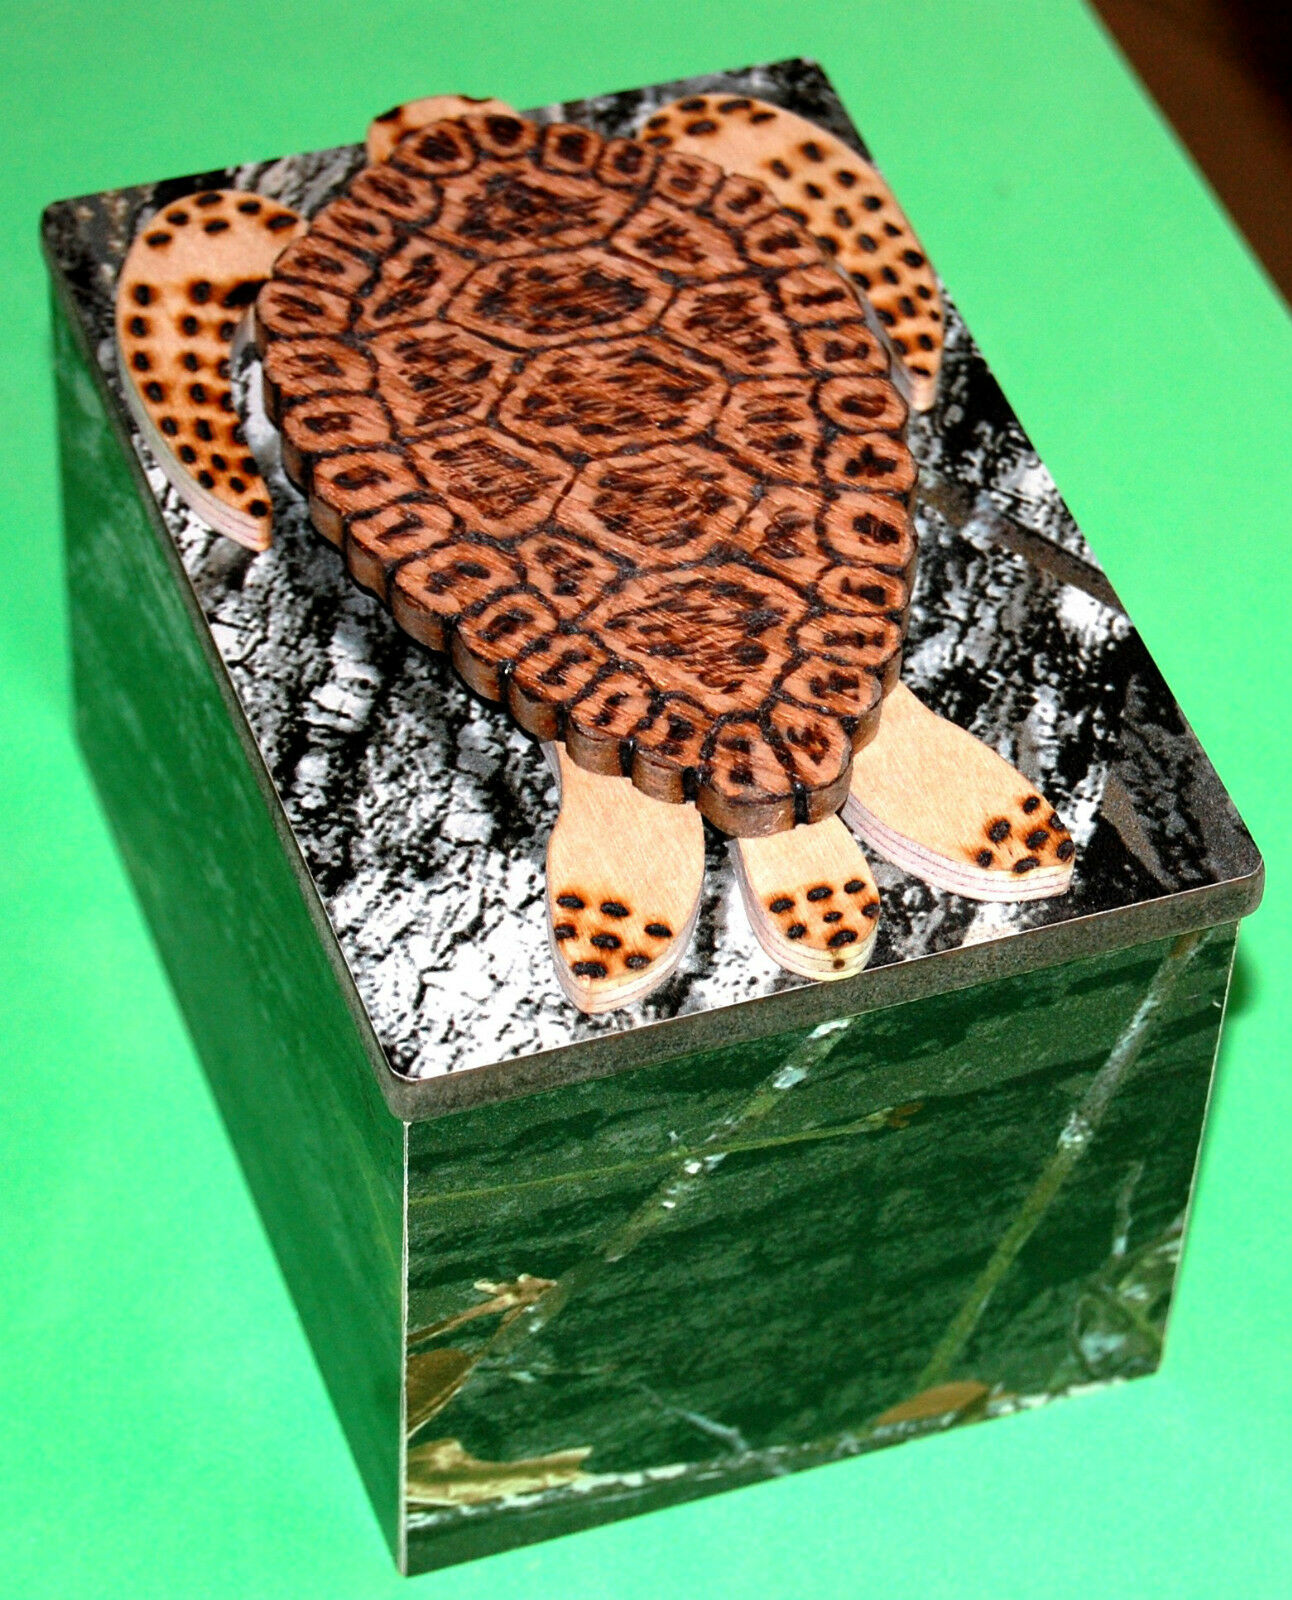 New Handmade Wooden Jigsaw Puzzle within a Puzzle Box (196 pieces)